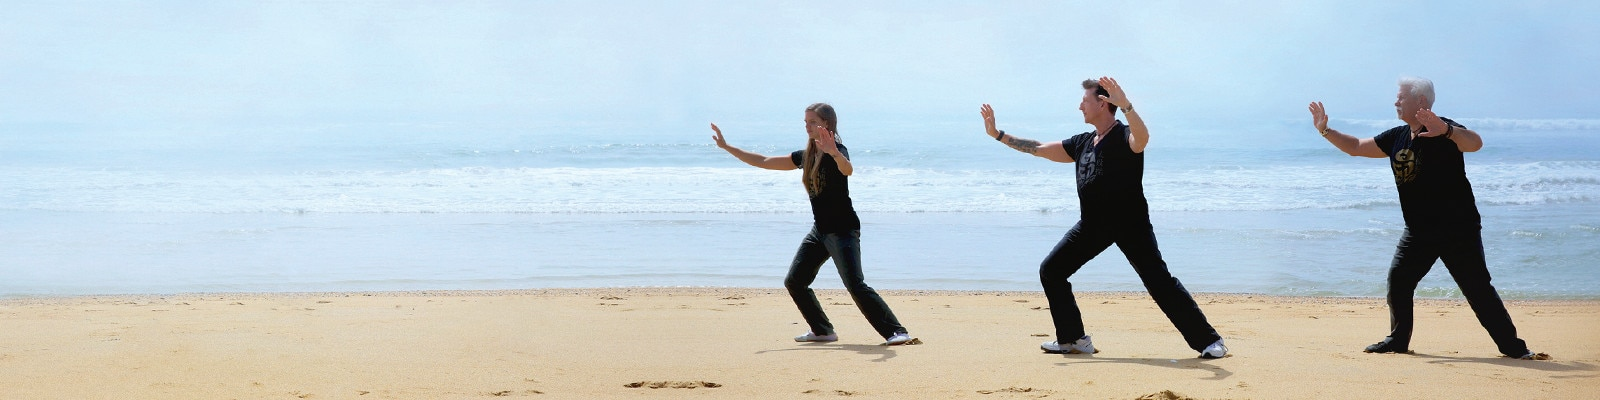 Tai Chi Fitness Workouts | The Great Courses Plus